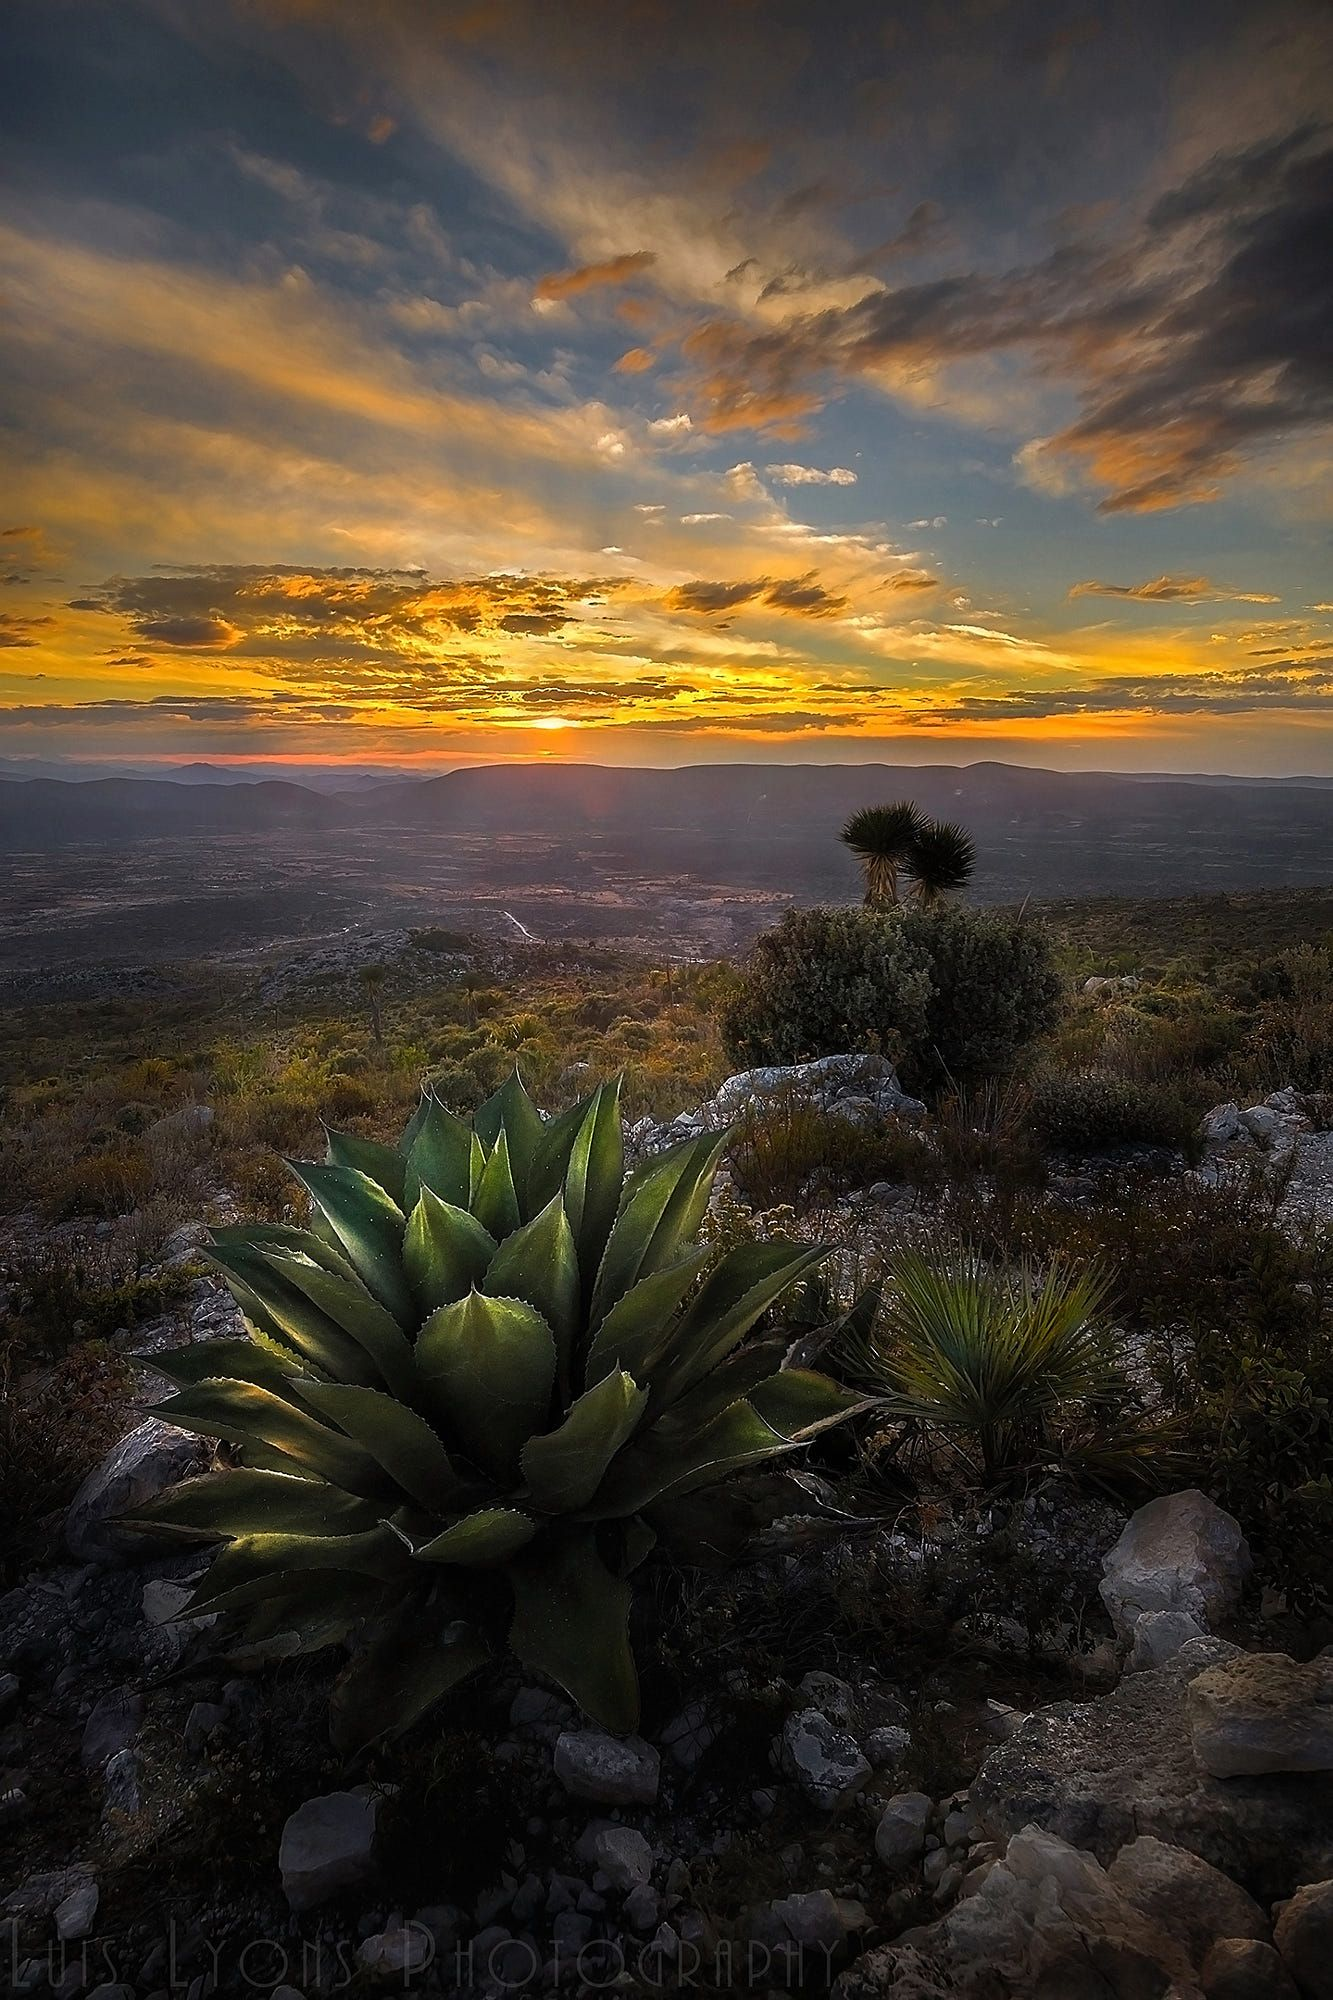 Agave Sunset Puebla Mexico California Landscape Mexico Wallpaper Nature Photography Hd wallpaper sunset desert trees bushes